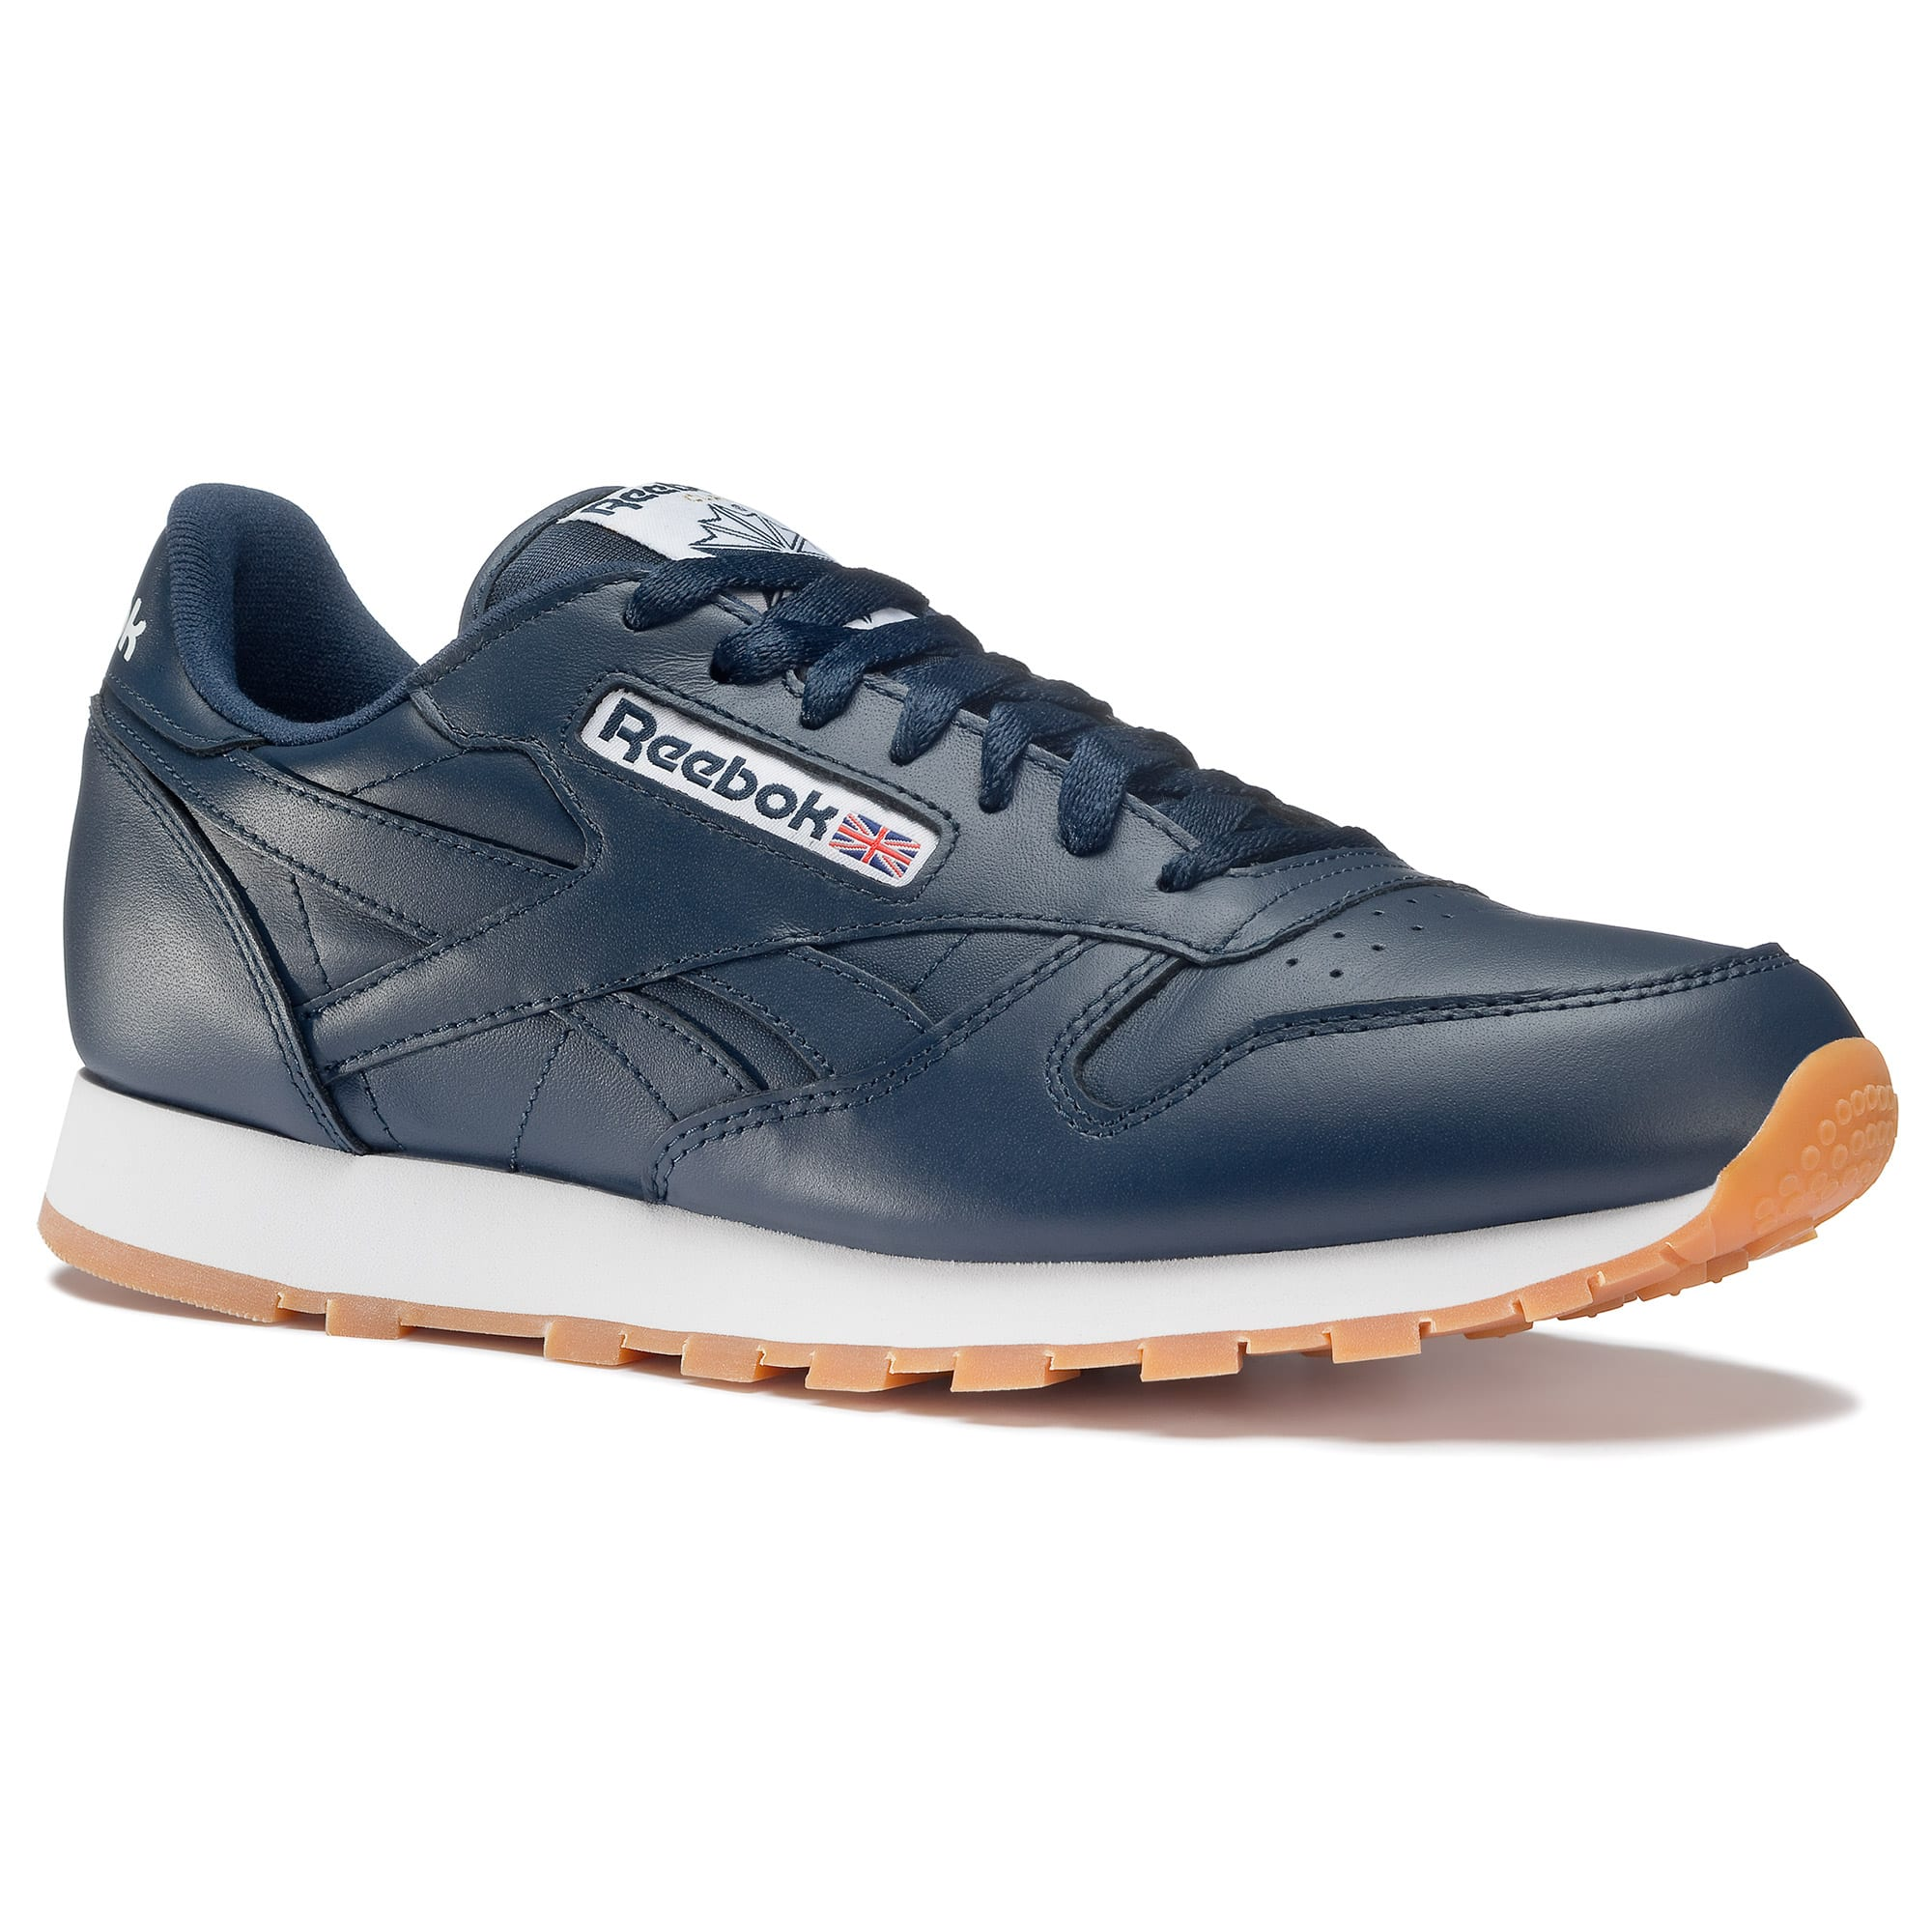 6e68b74d322 Reebok Men s Classic Leather Navy Gum Shoes  22.50